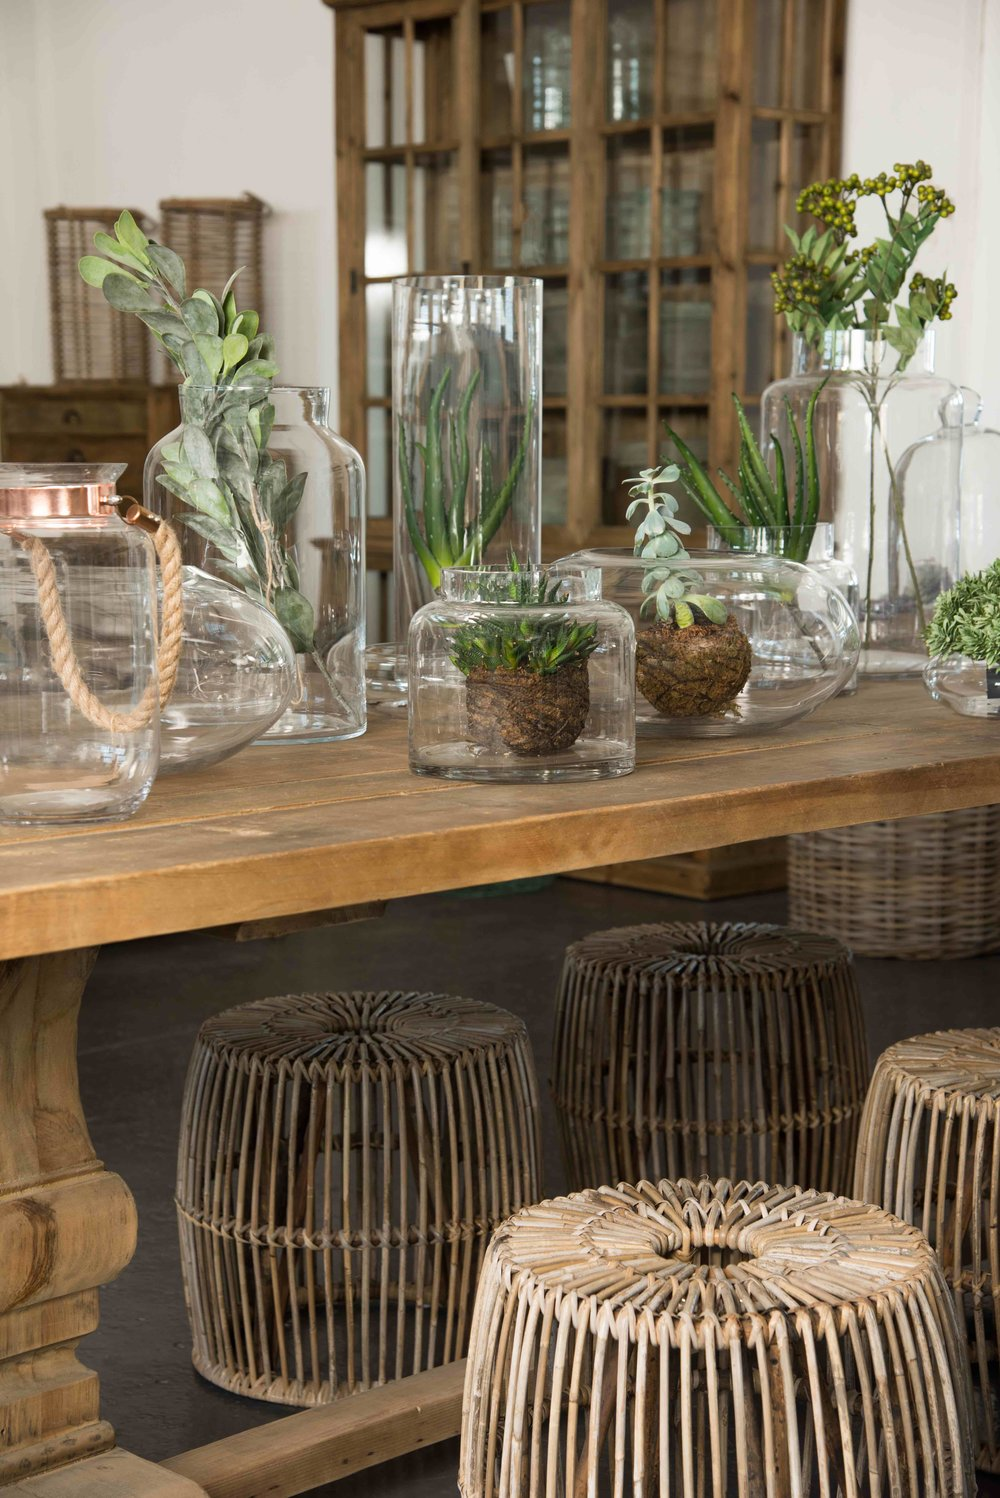 LR Close Up Table & Stools - Low Res.jpg